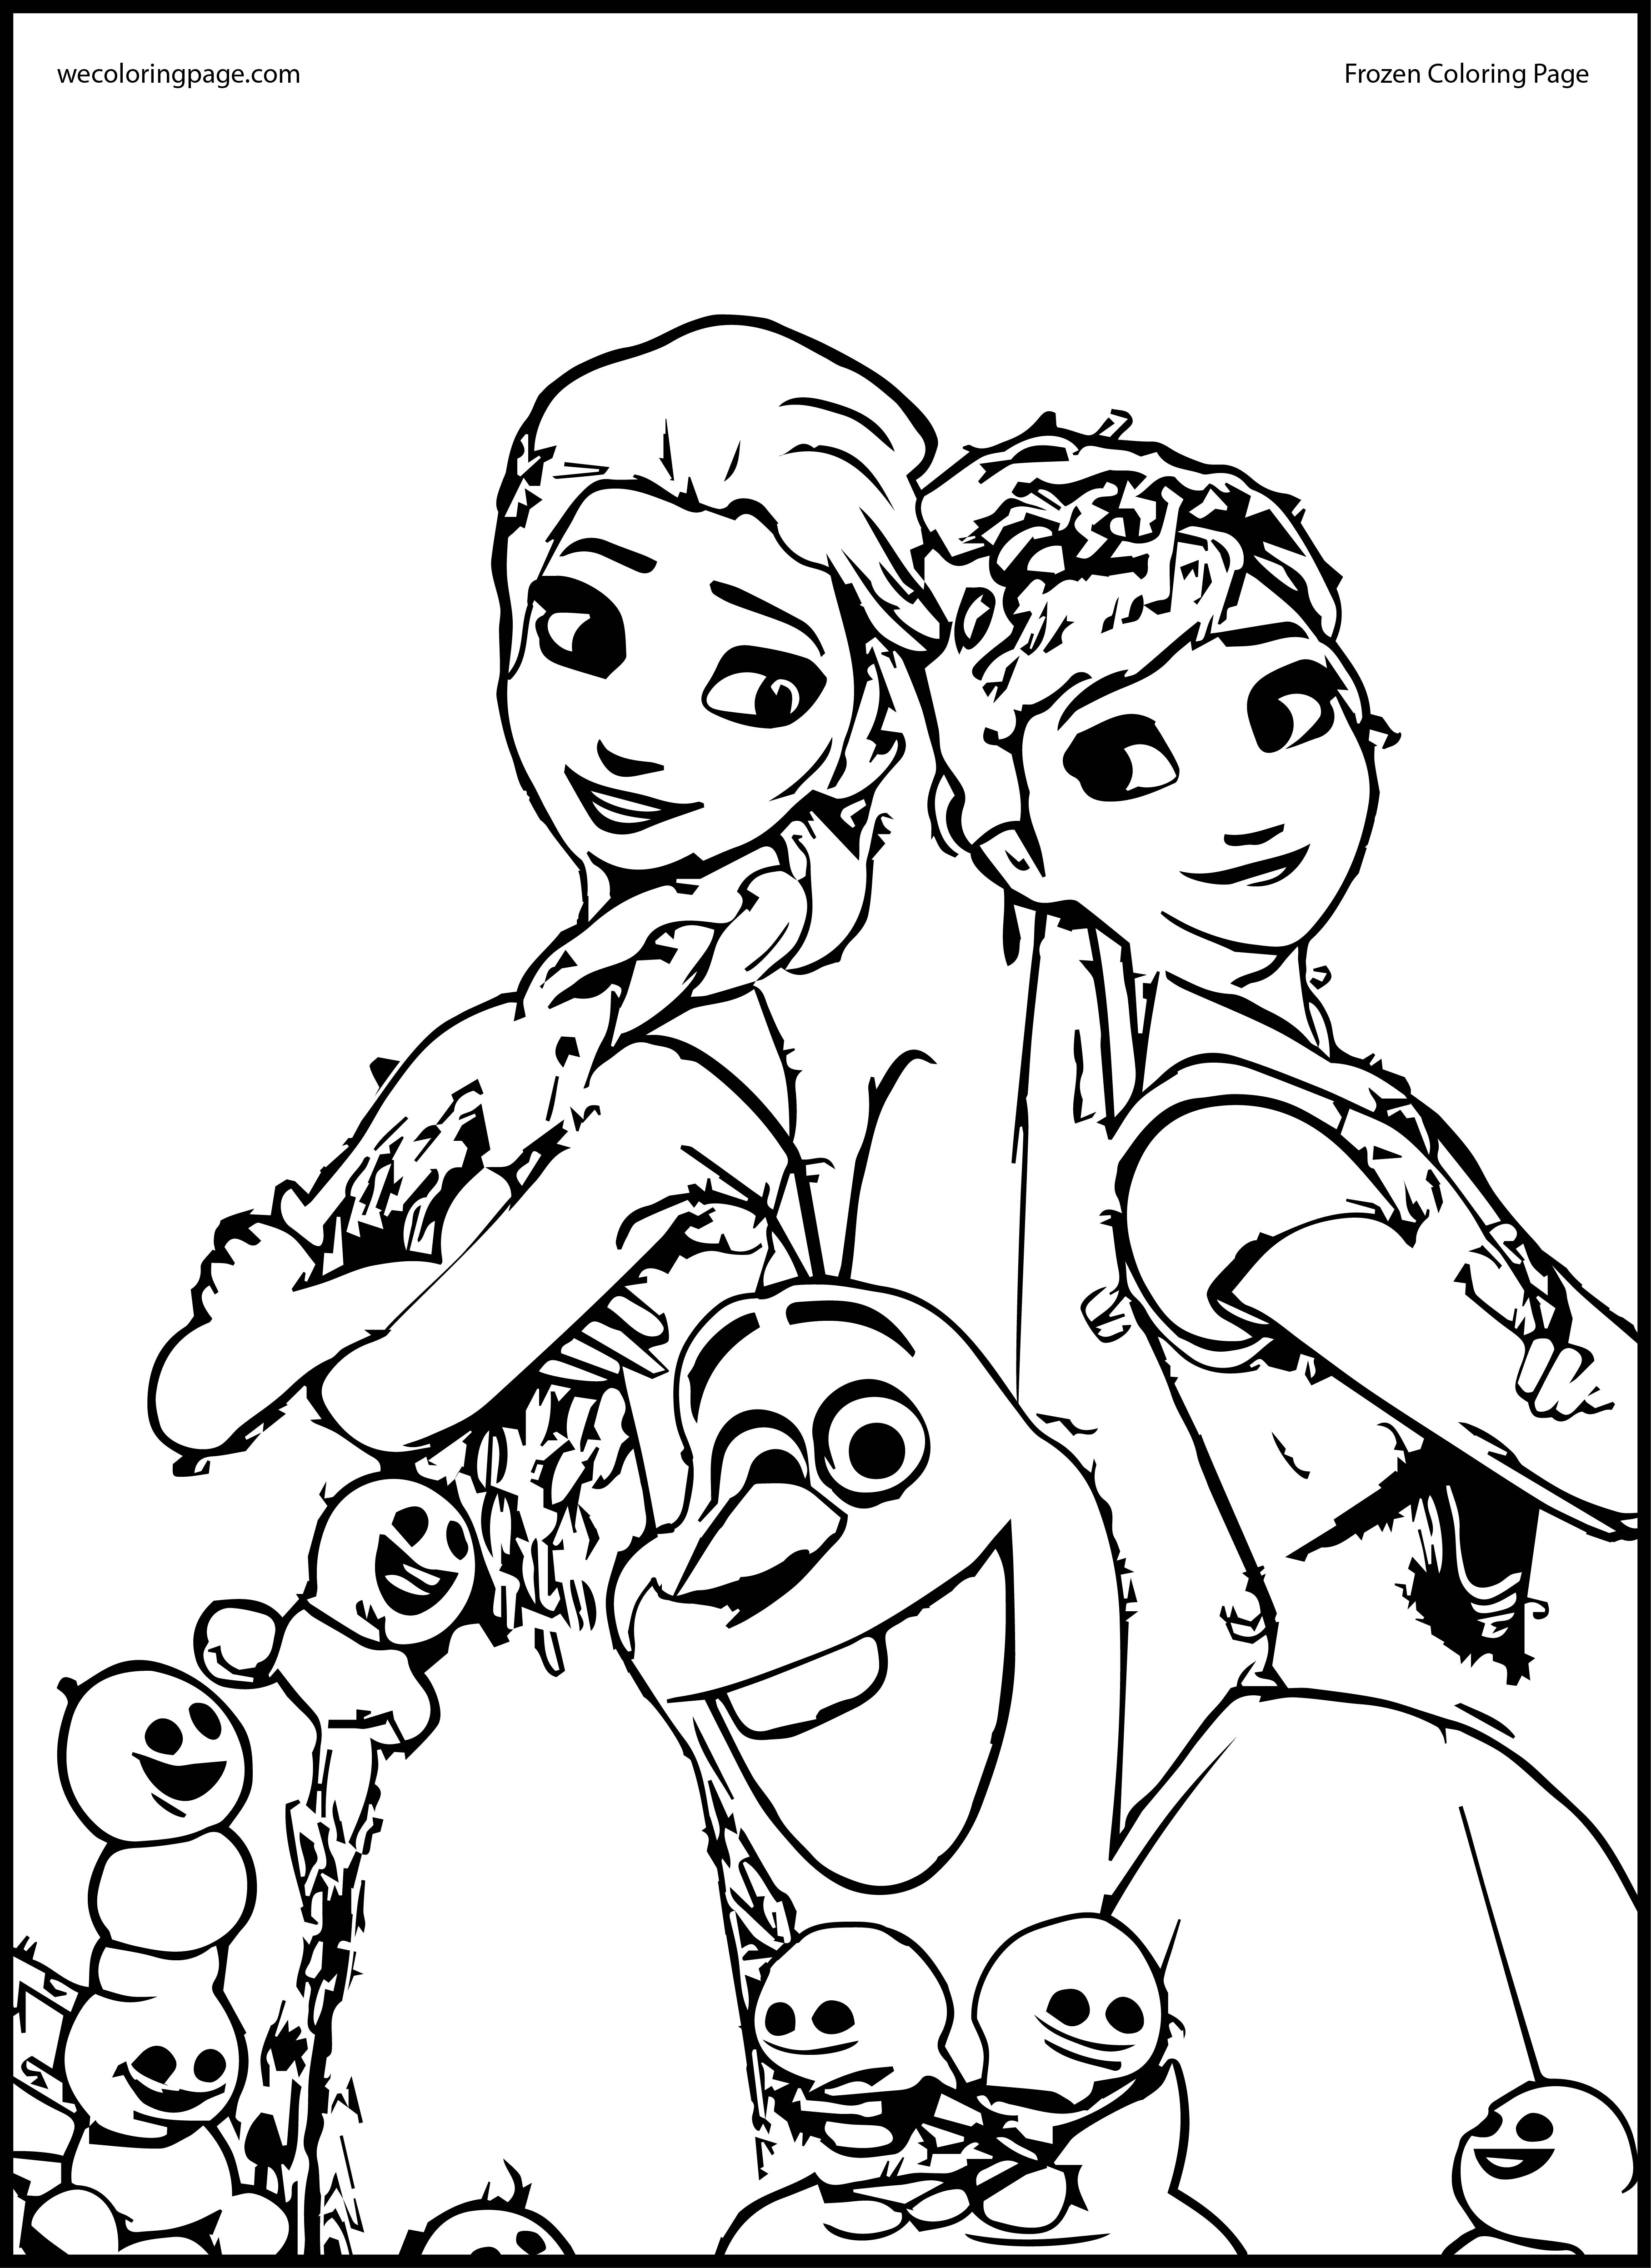 pictures of frozen to color elsa and anna coloring pages coloring home pictures frozen of to color